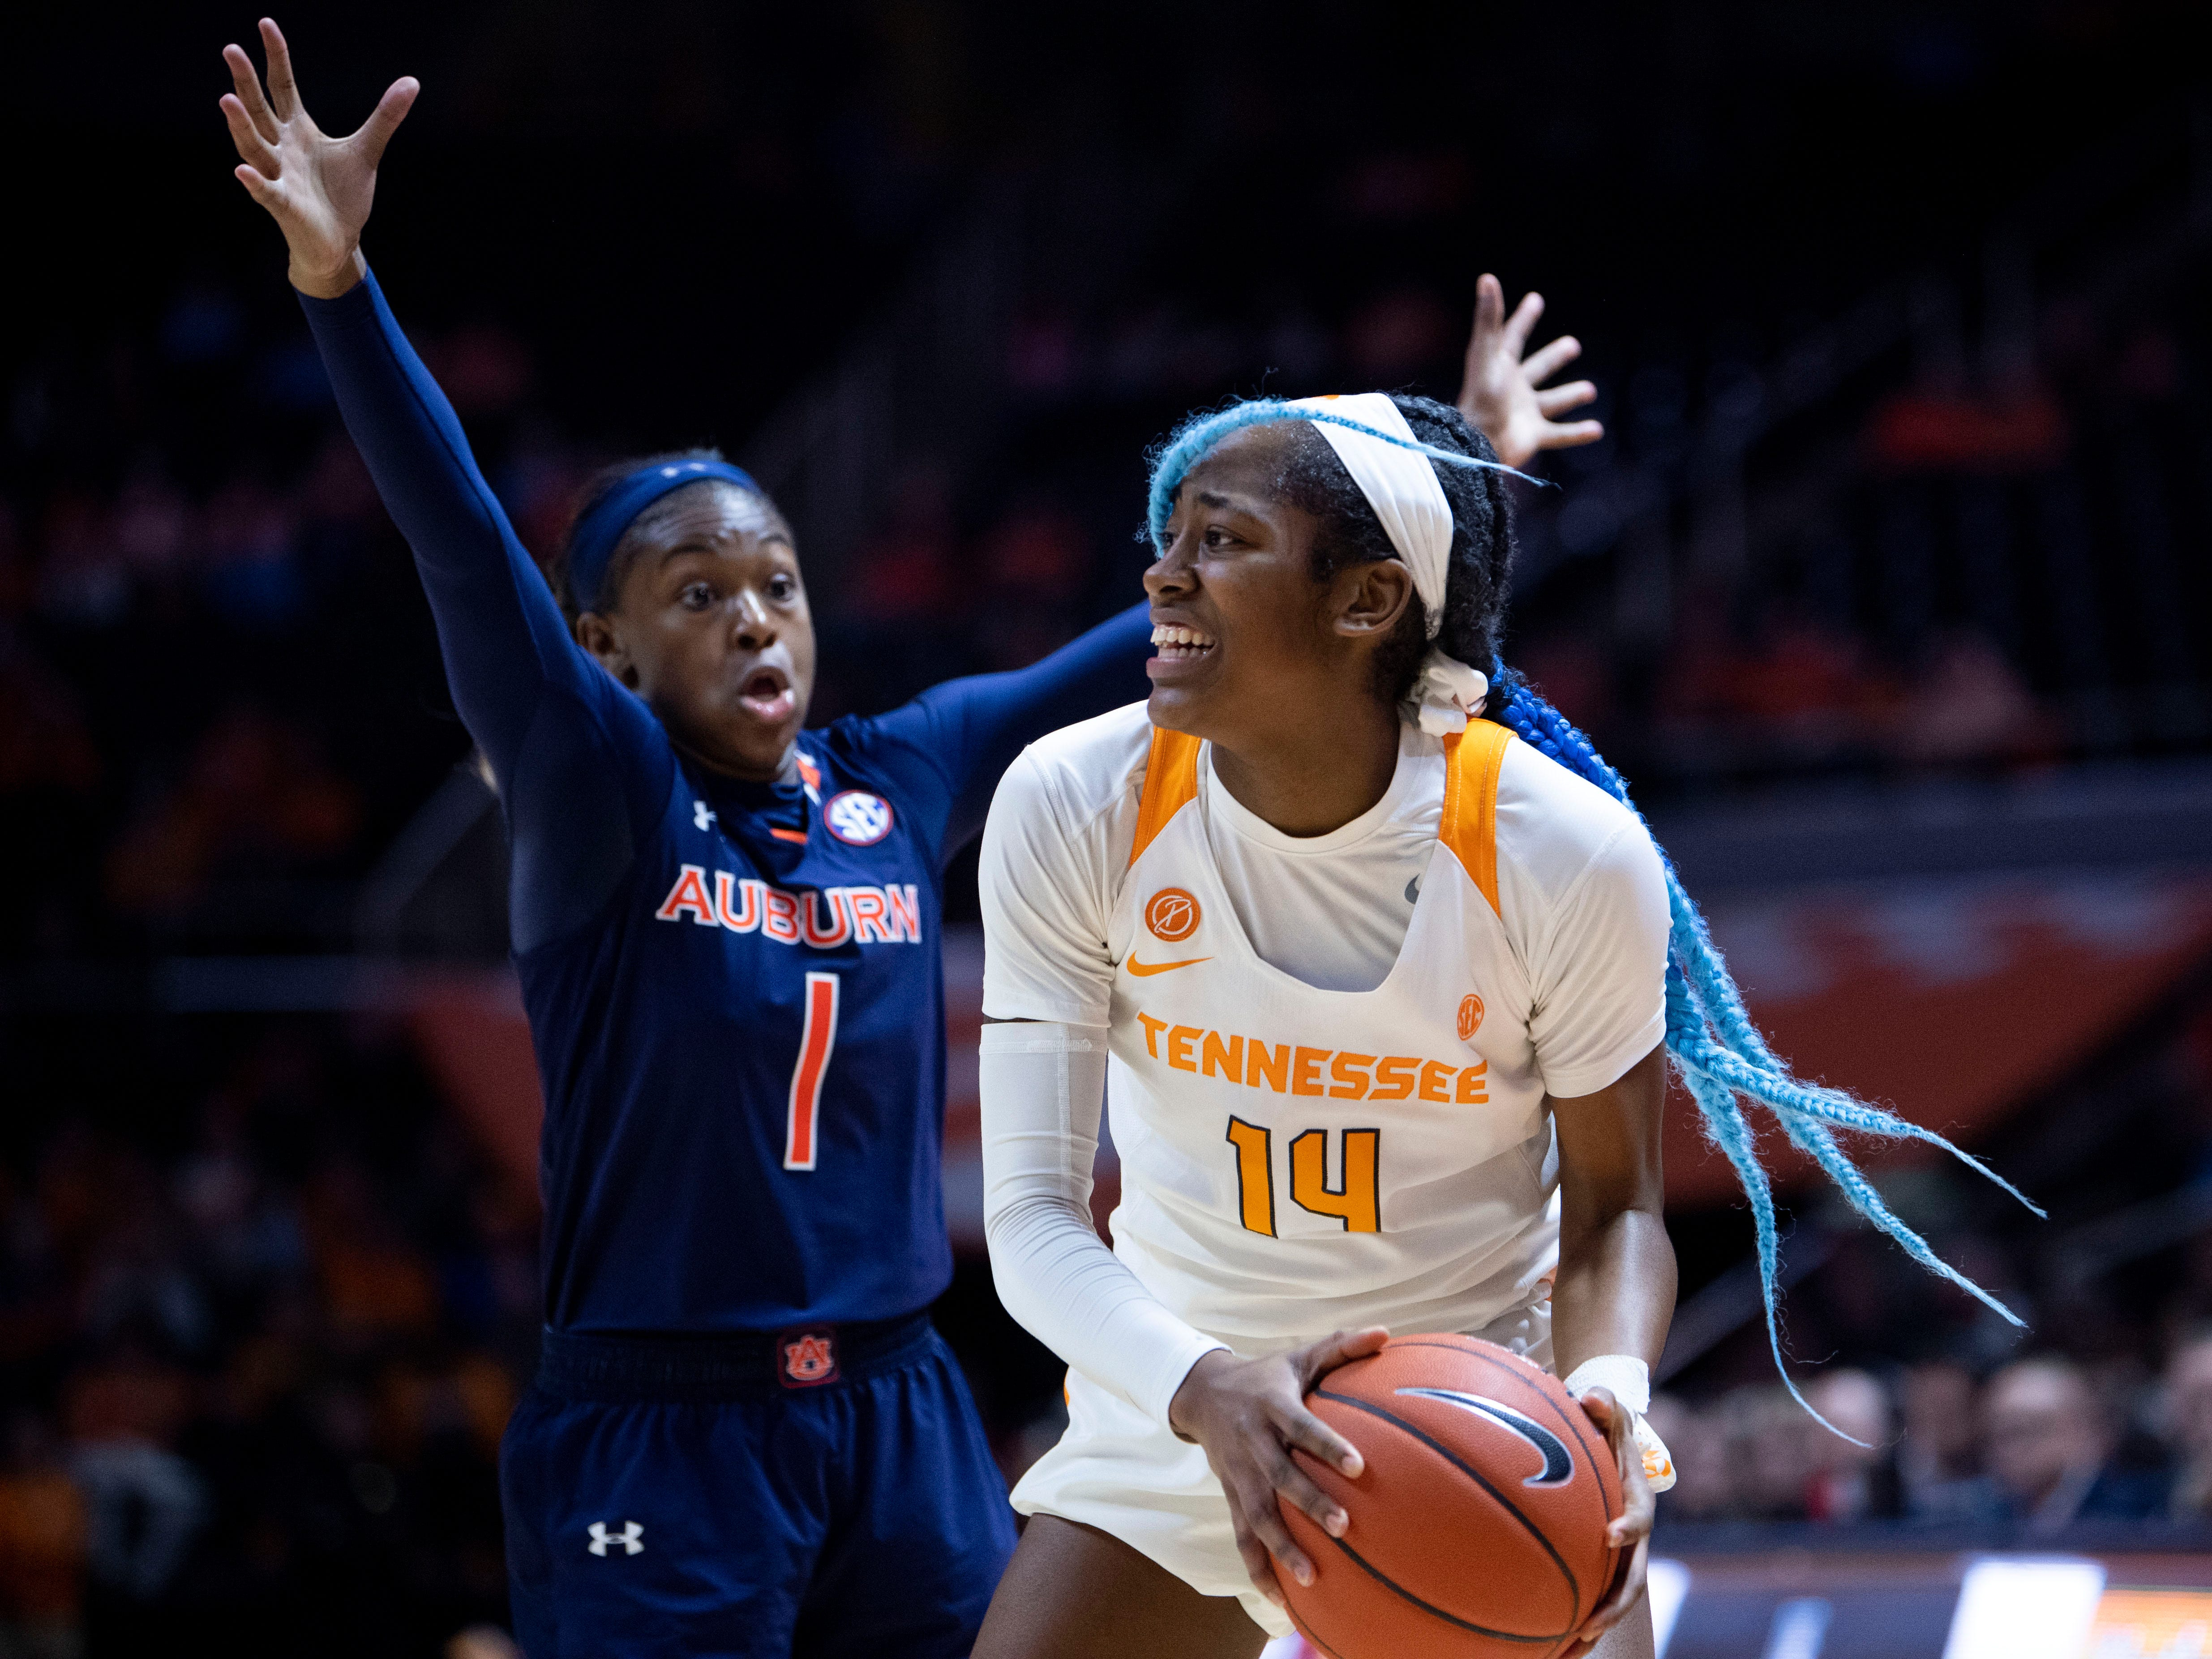 Tennessee's Zaay Green (14) is guarded by Auburn's Robyn Benton (1) on Thursday, February 14, 2019.